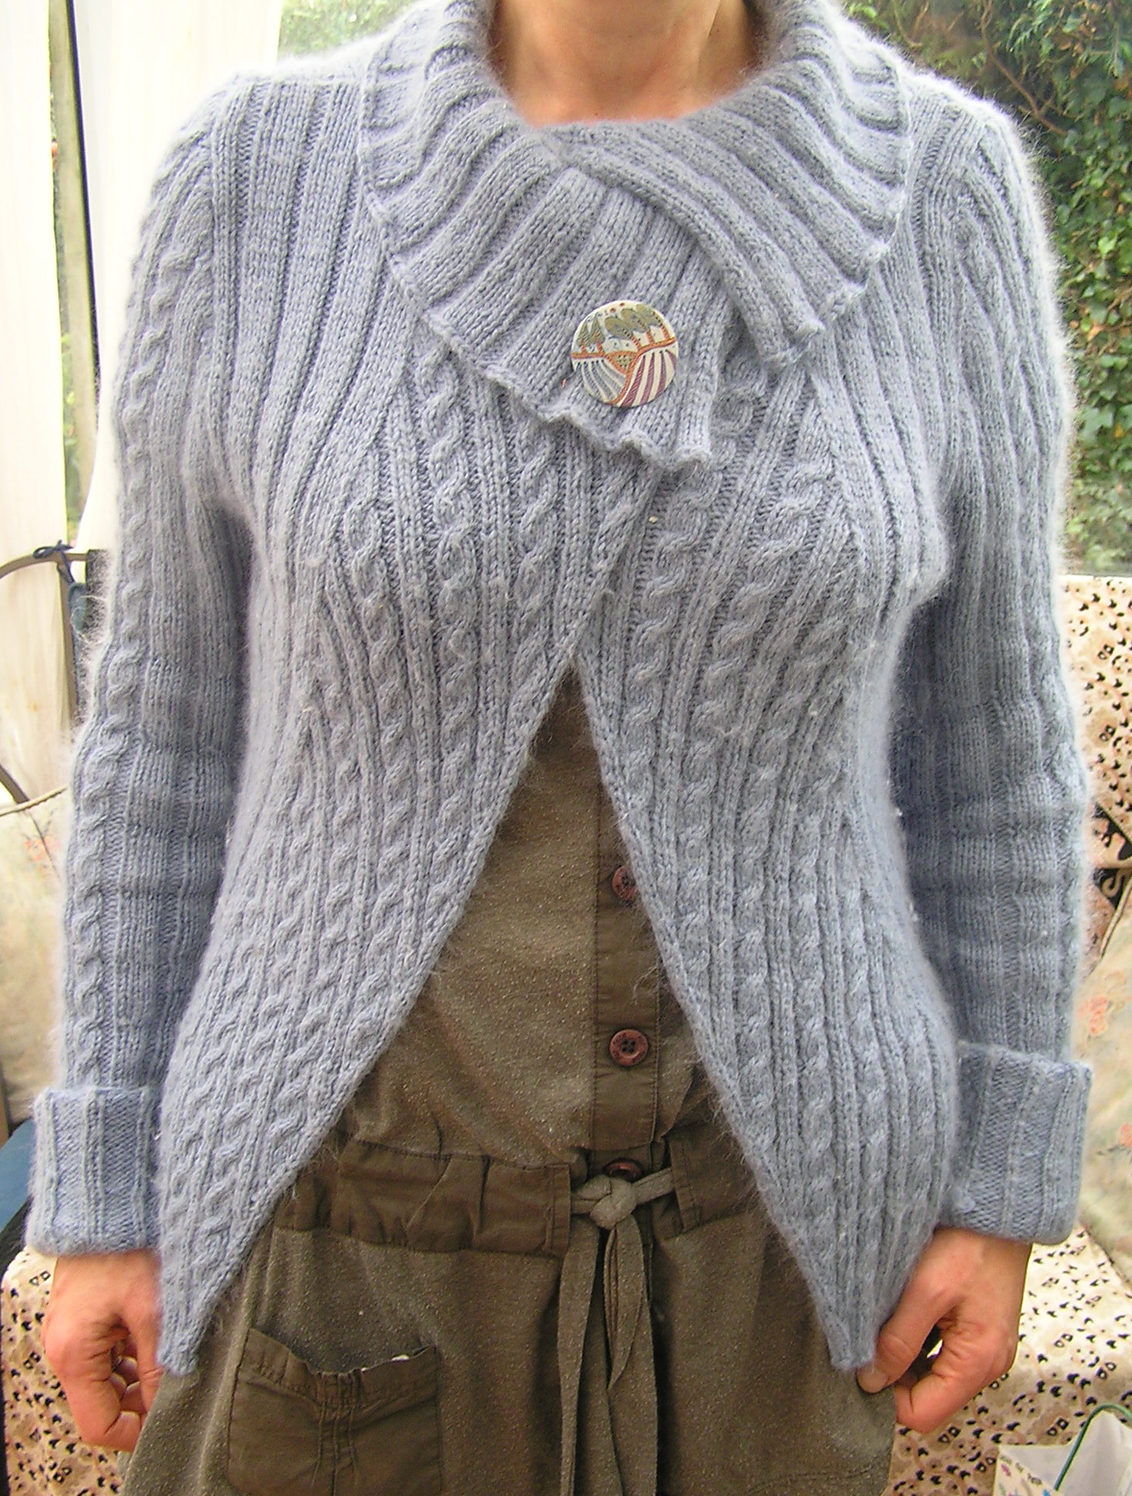 Free Knitting Patterns For Shrugs And Wraps Wrap Cardigan Knitting Patterns In The Loop Knitting